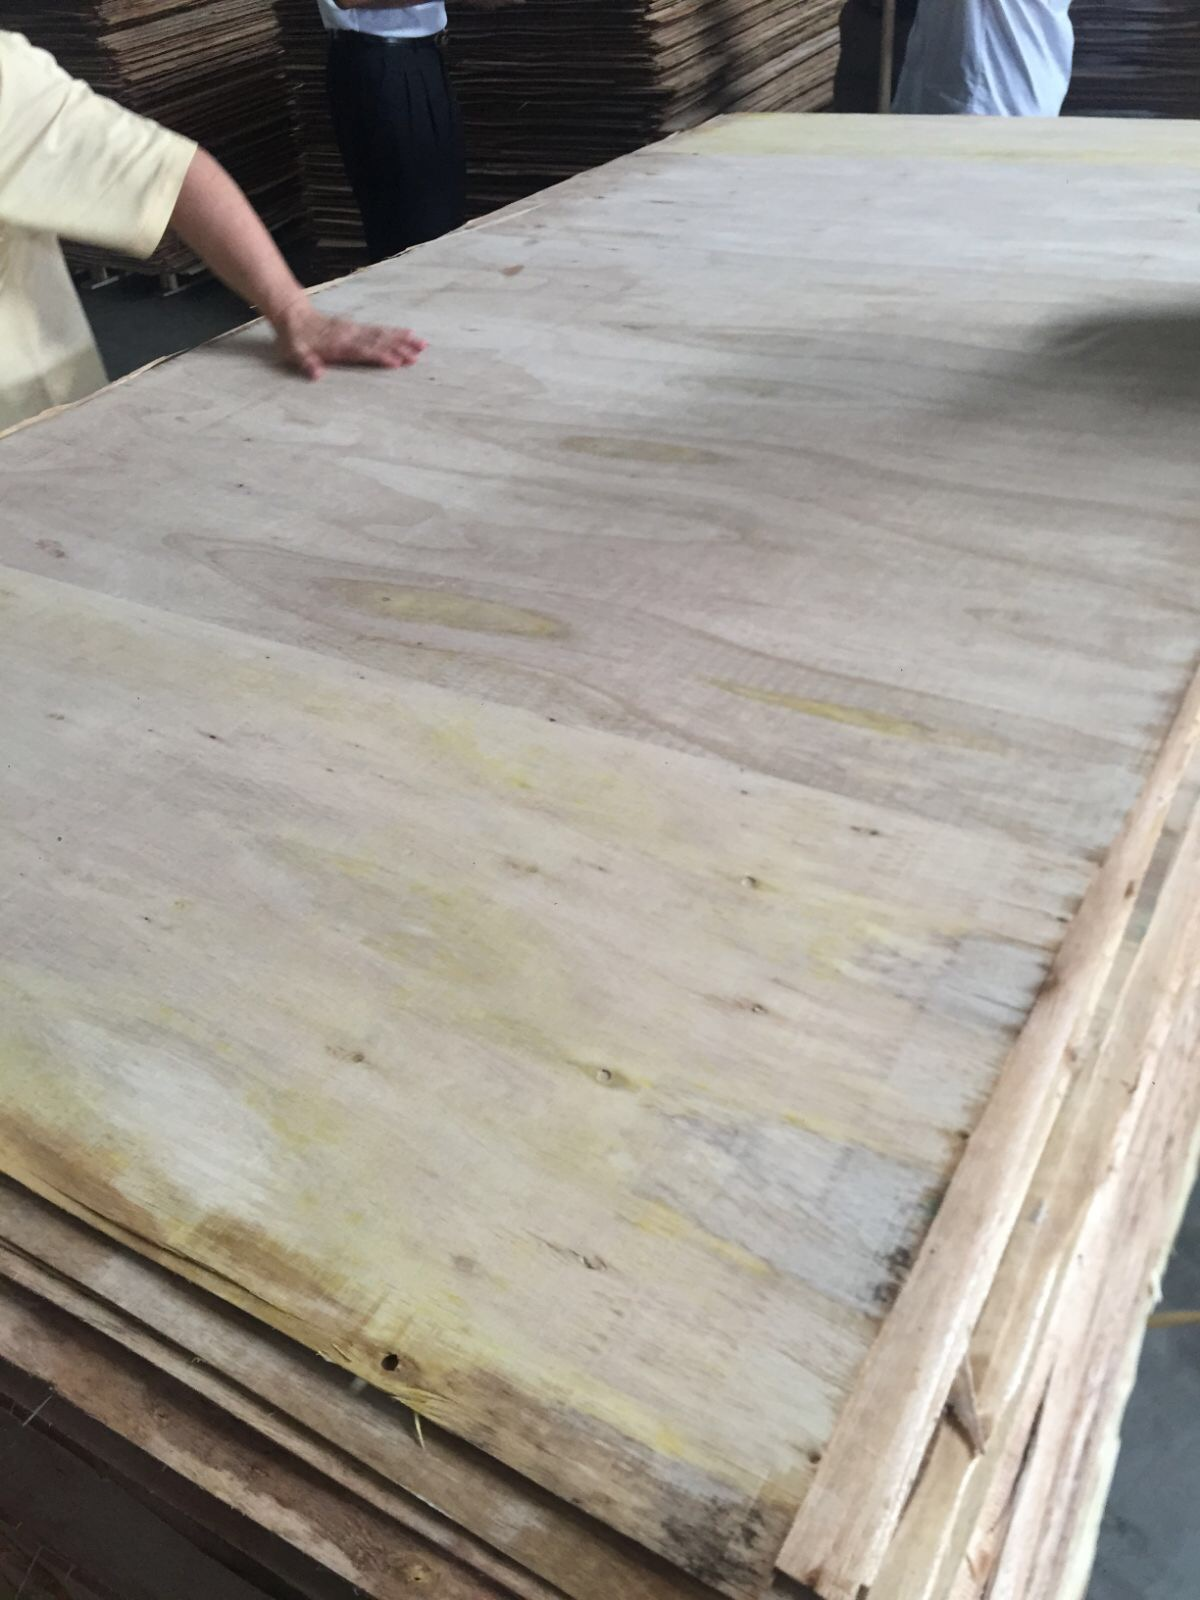 Plywood Quality Inspection